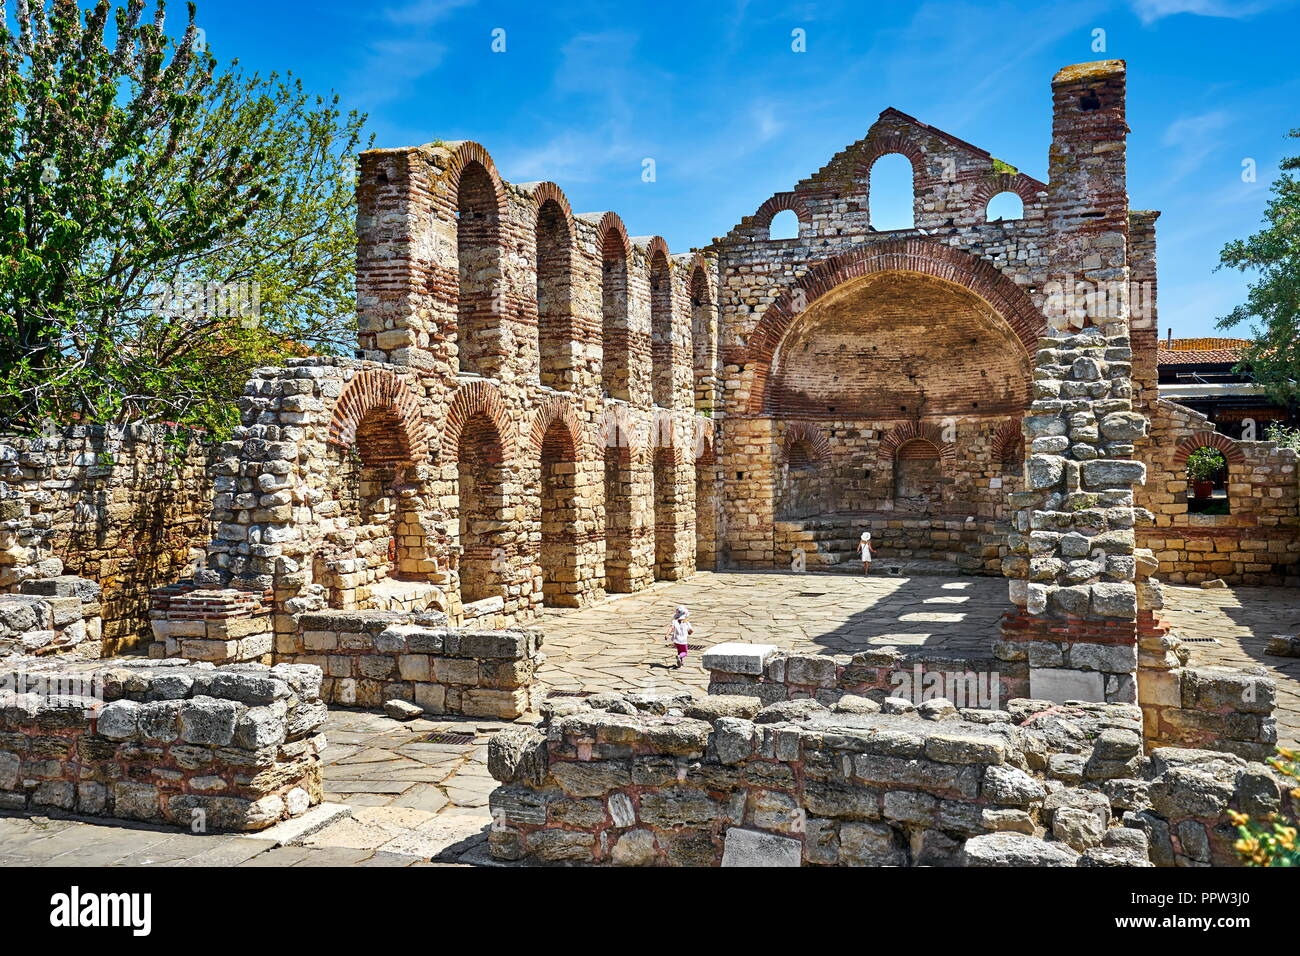 Ruins of Church of St. Sophia, Nessebar, Bulgaria - Stock Image